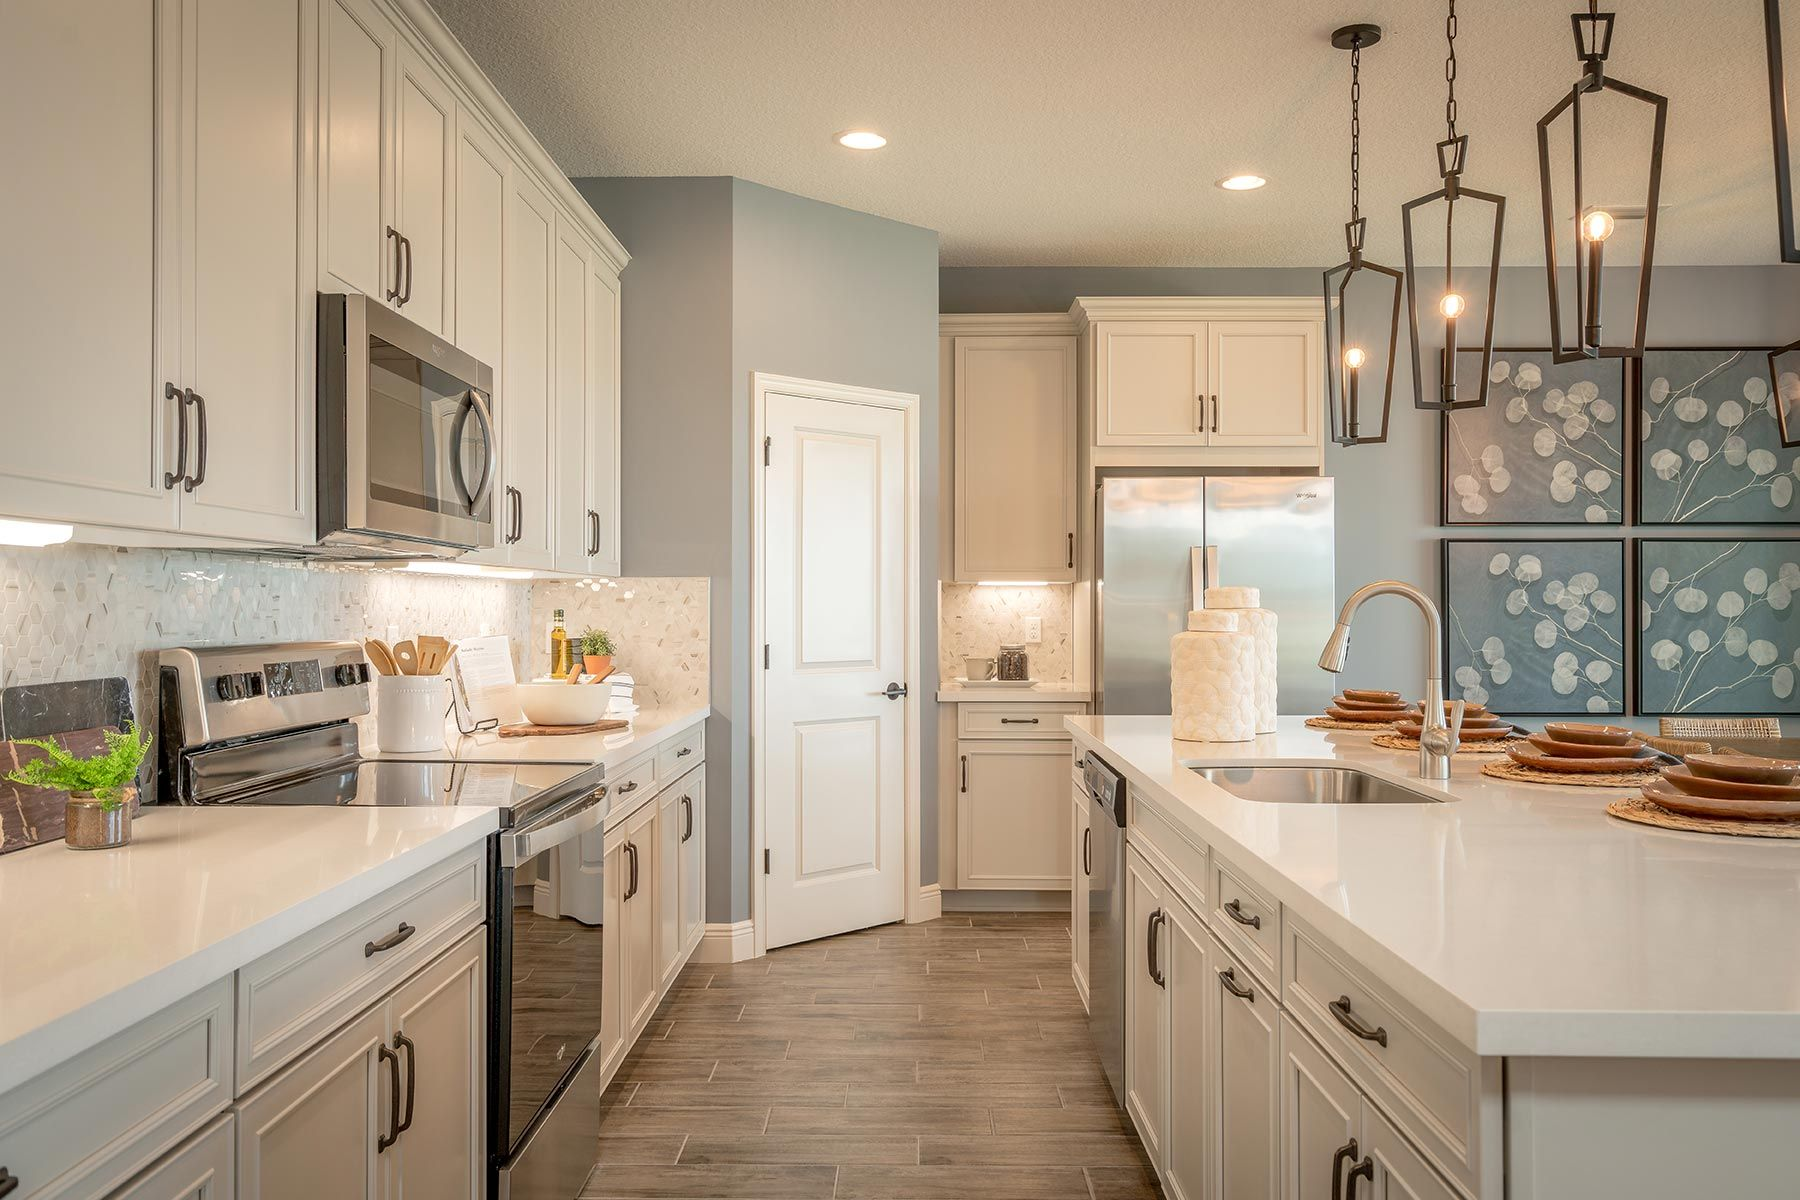 Kitchen featured in the Oakley By Mattamy Homes in Palm Beach County, FL